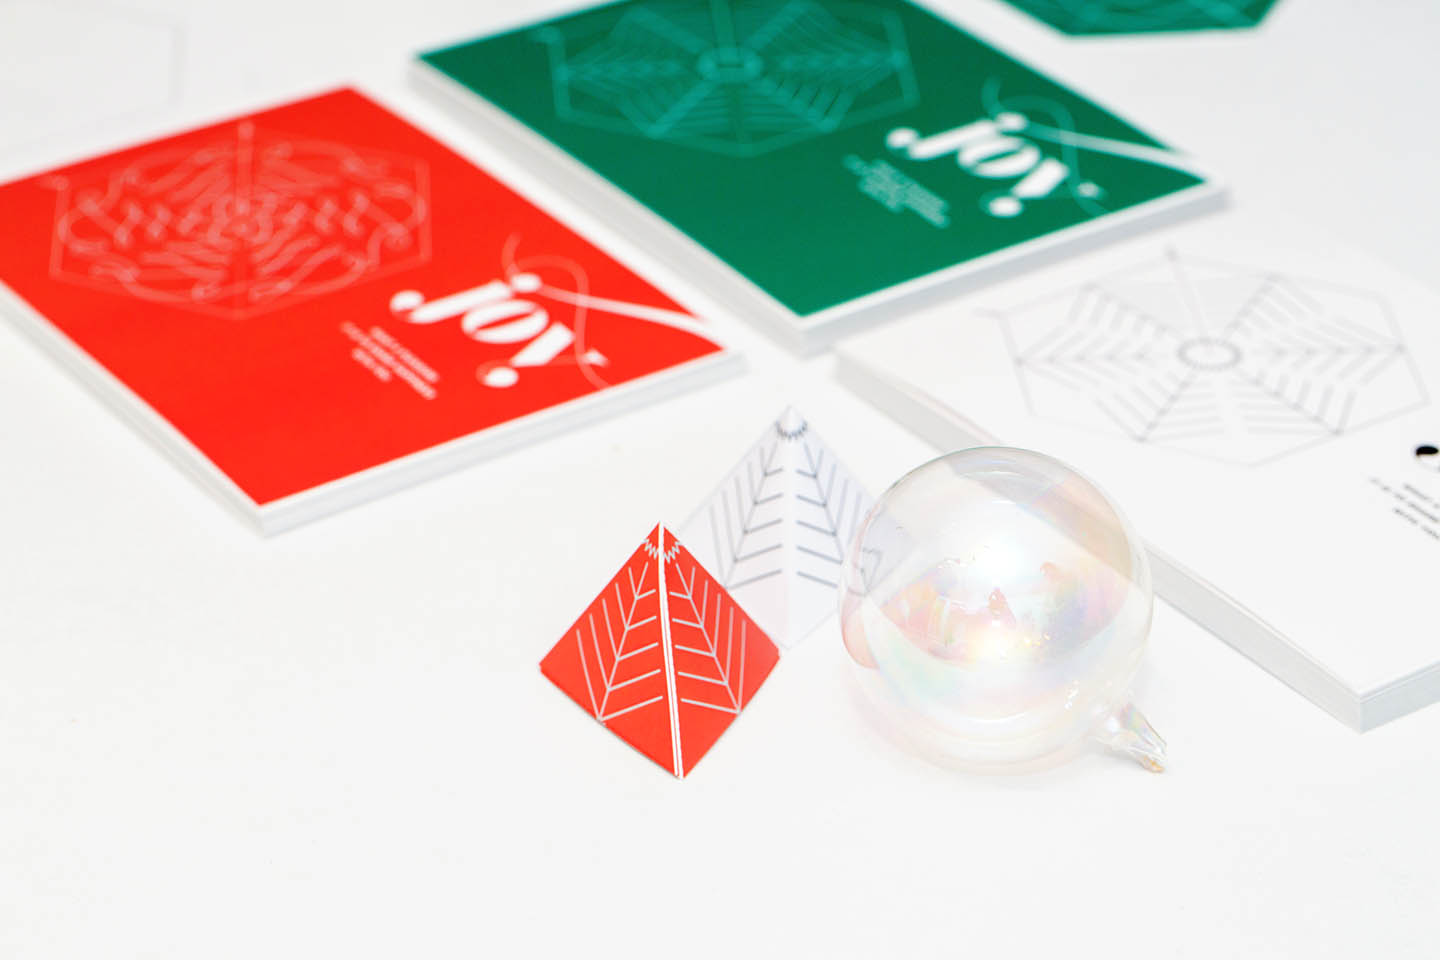 Wunderfold in its card form, punched out hexagon form, and folded 3D tree form in green and red